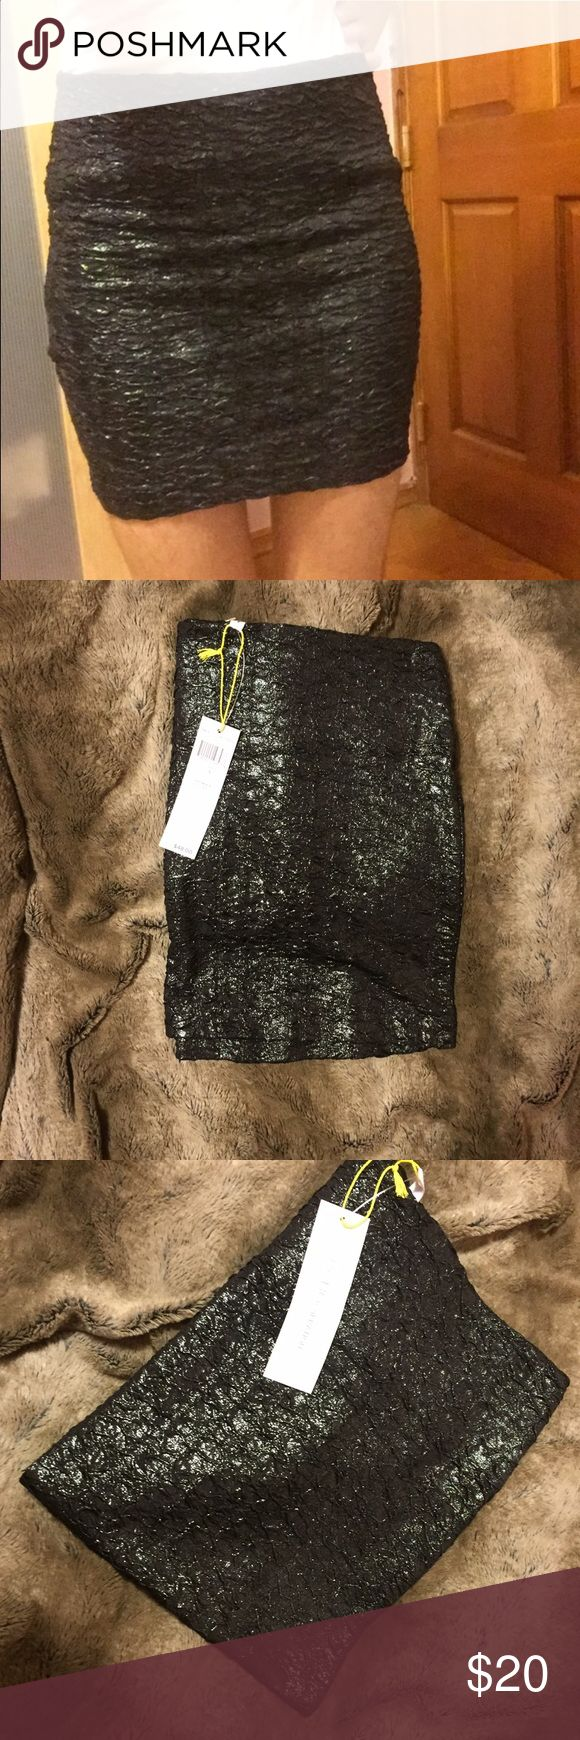 NEW BCBGENERATION BLACK MINI SKIRT New with tags never worn. Size S. Feel free to put in offers. Great for any occasion BCBGeneration Skirts Mini